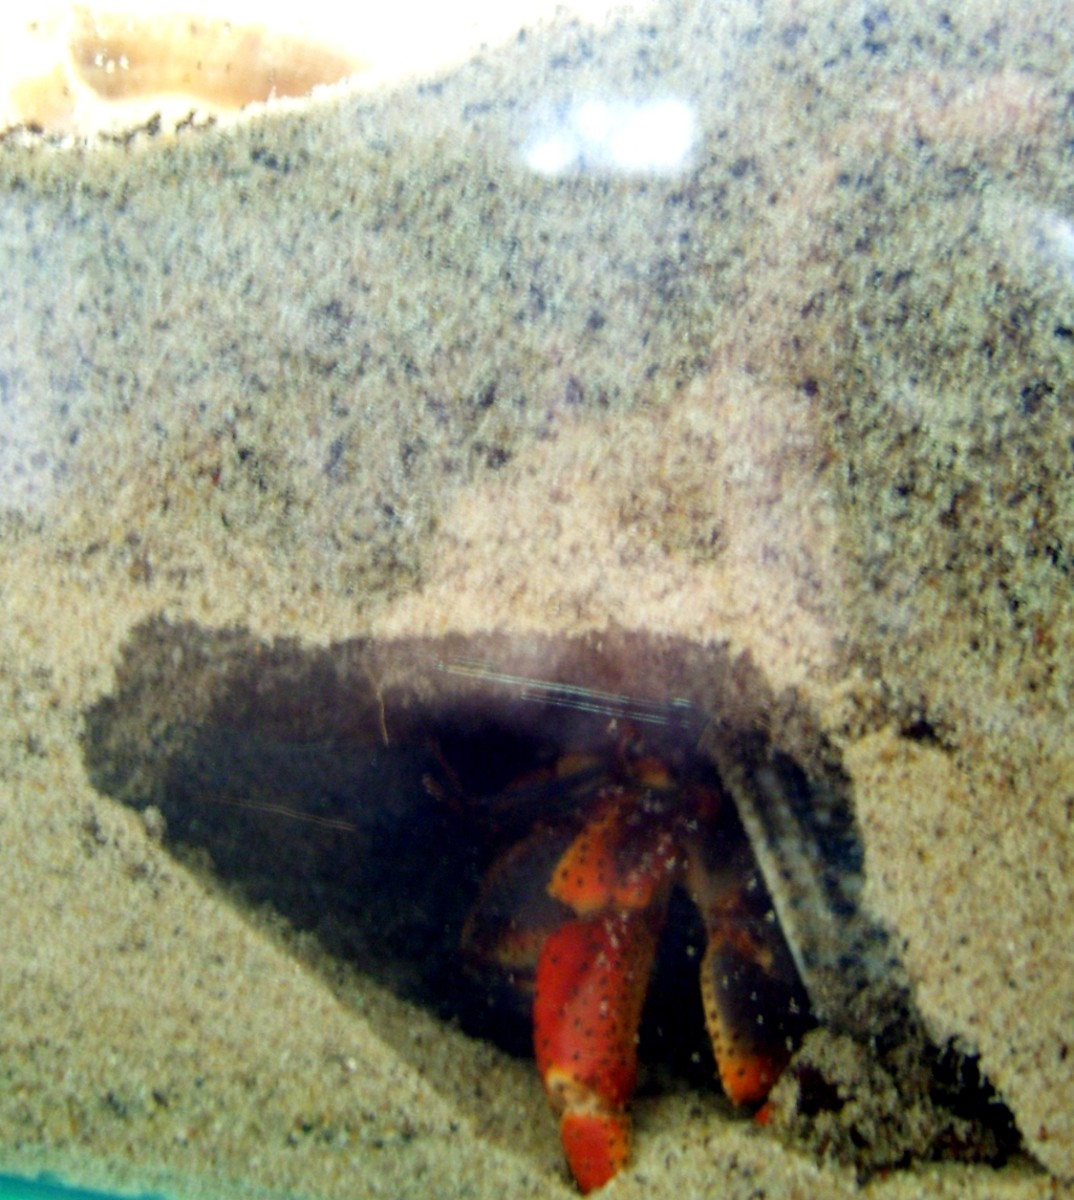 Hermit crabs enjoy digging and must do so to survive. Be sure to provide enough moist sand for digging.